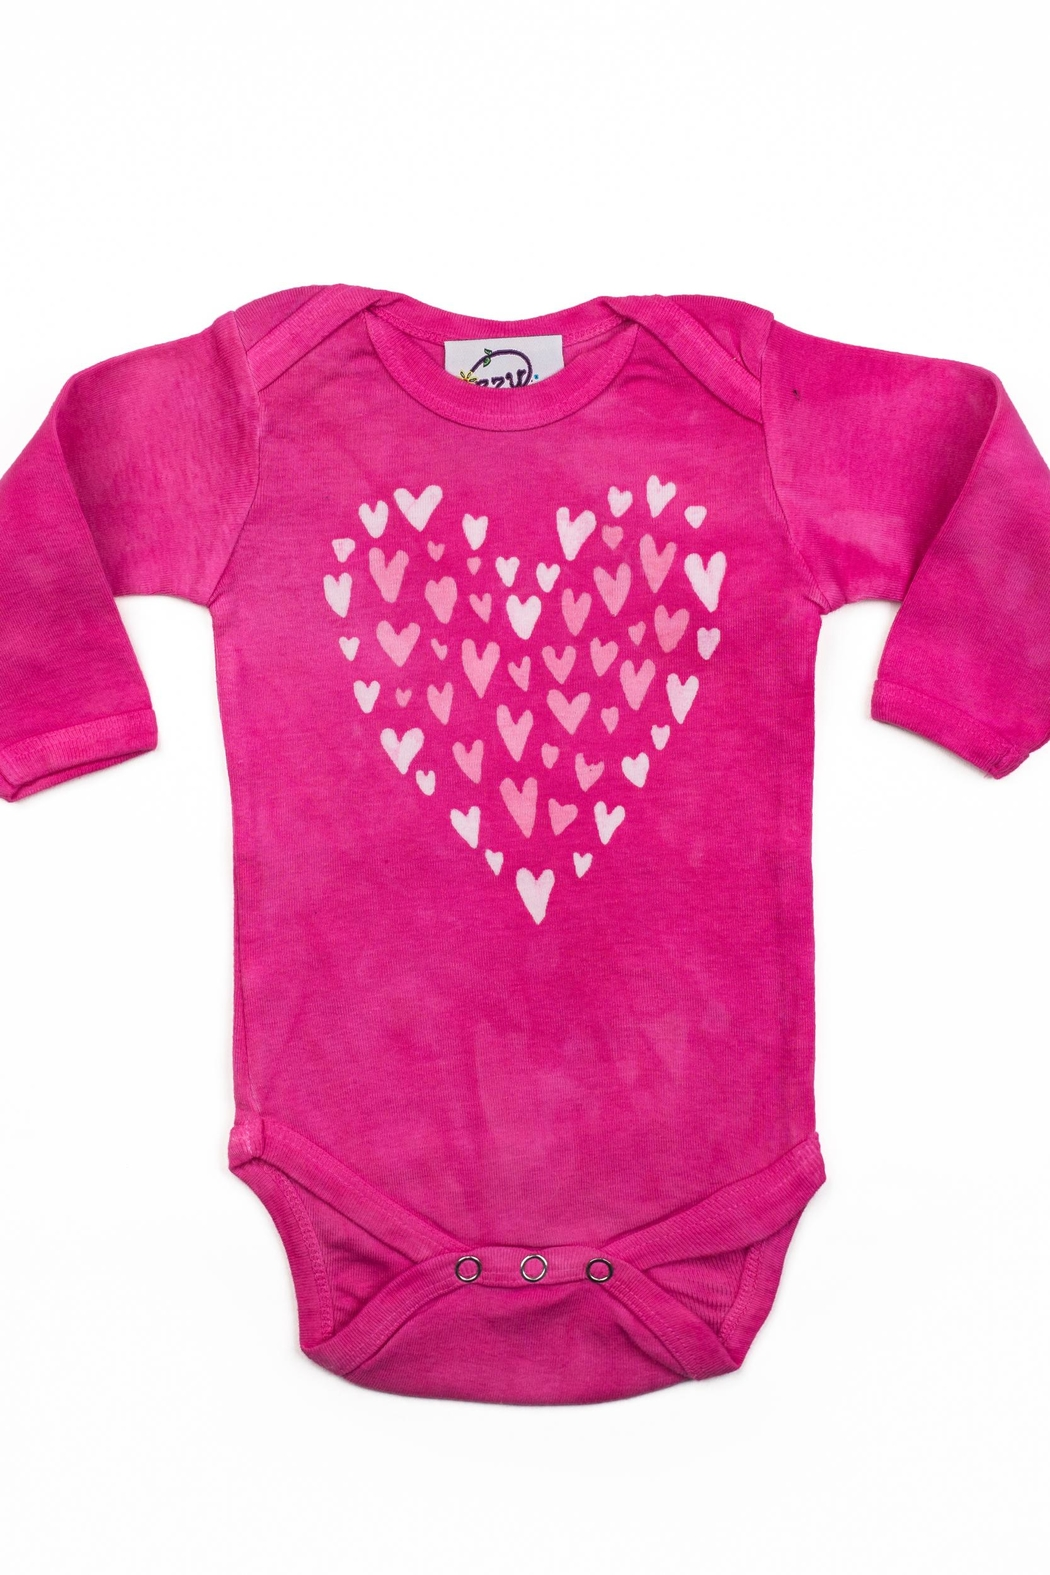 LizzyLoo Designs Tiny Hearts Onesie - Main Image